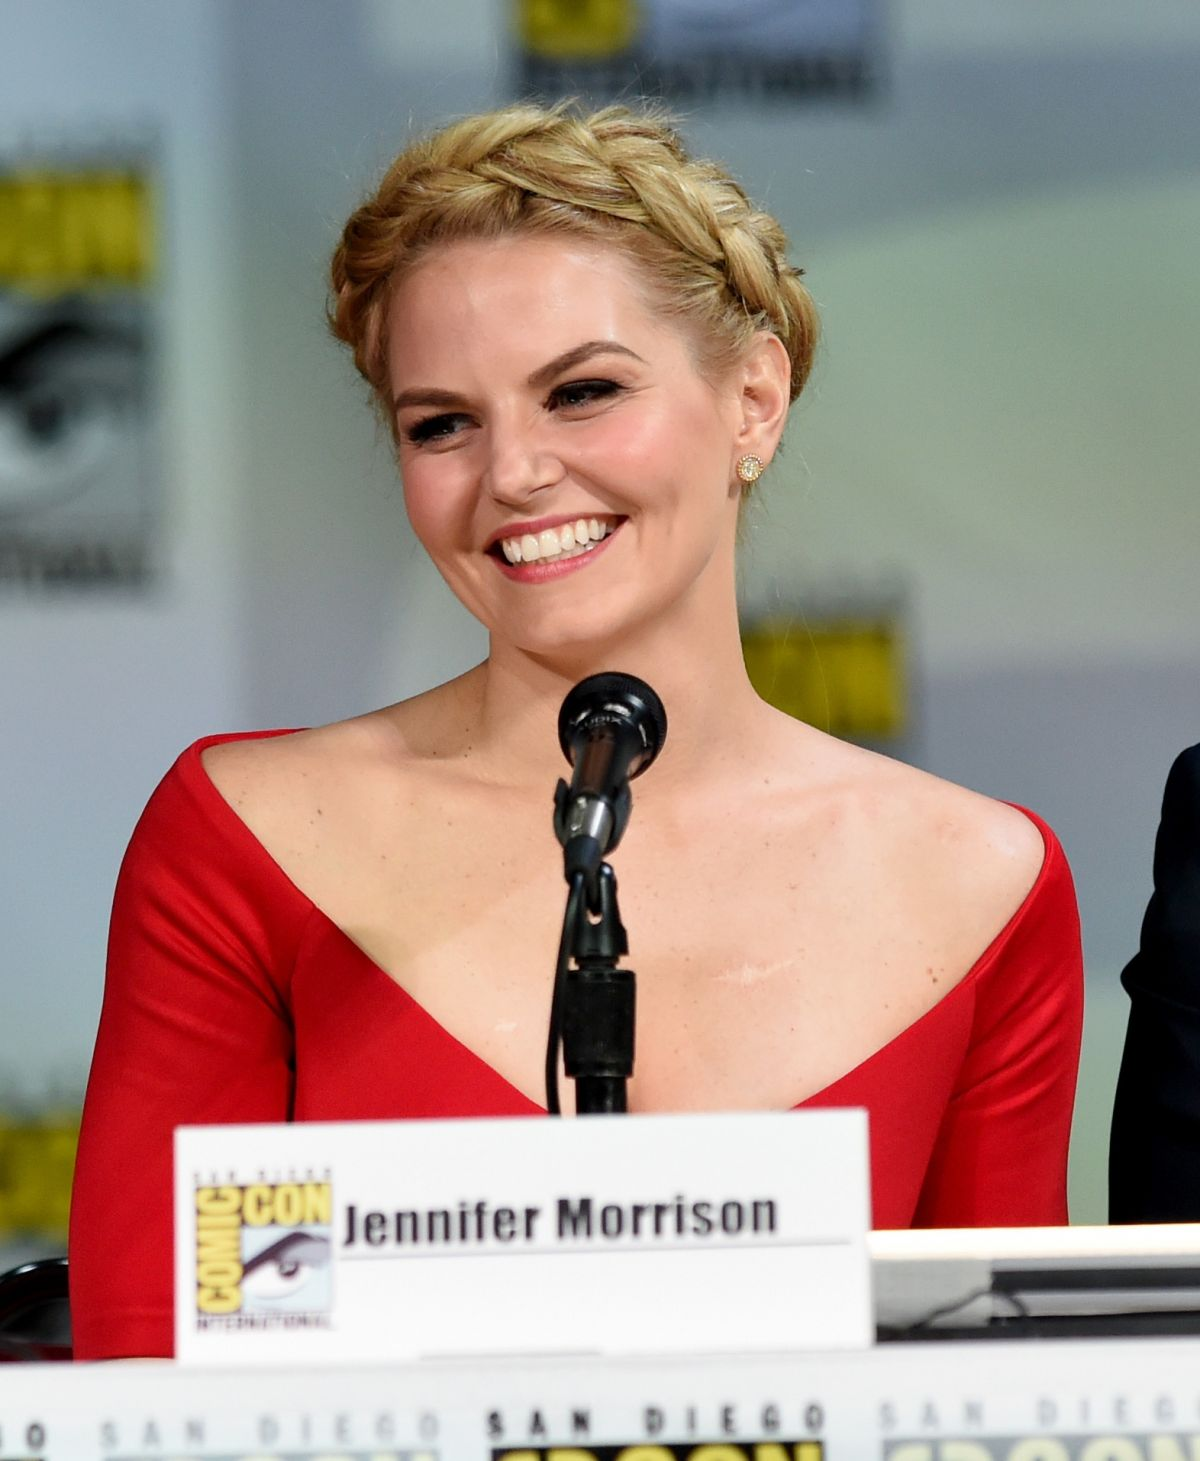 JENNIFER MORRISON at Once Upon a Time Panel at Comic-con 2014 in San Diego